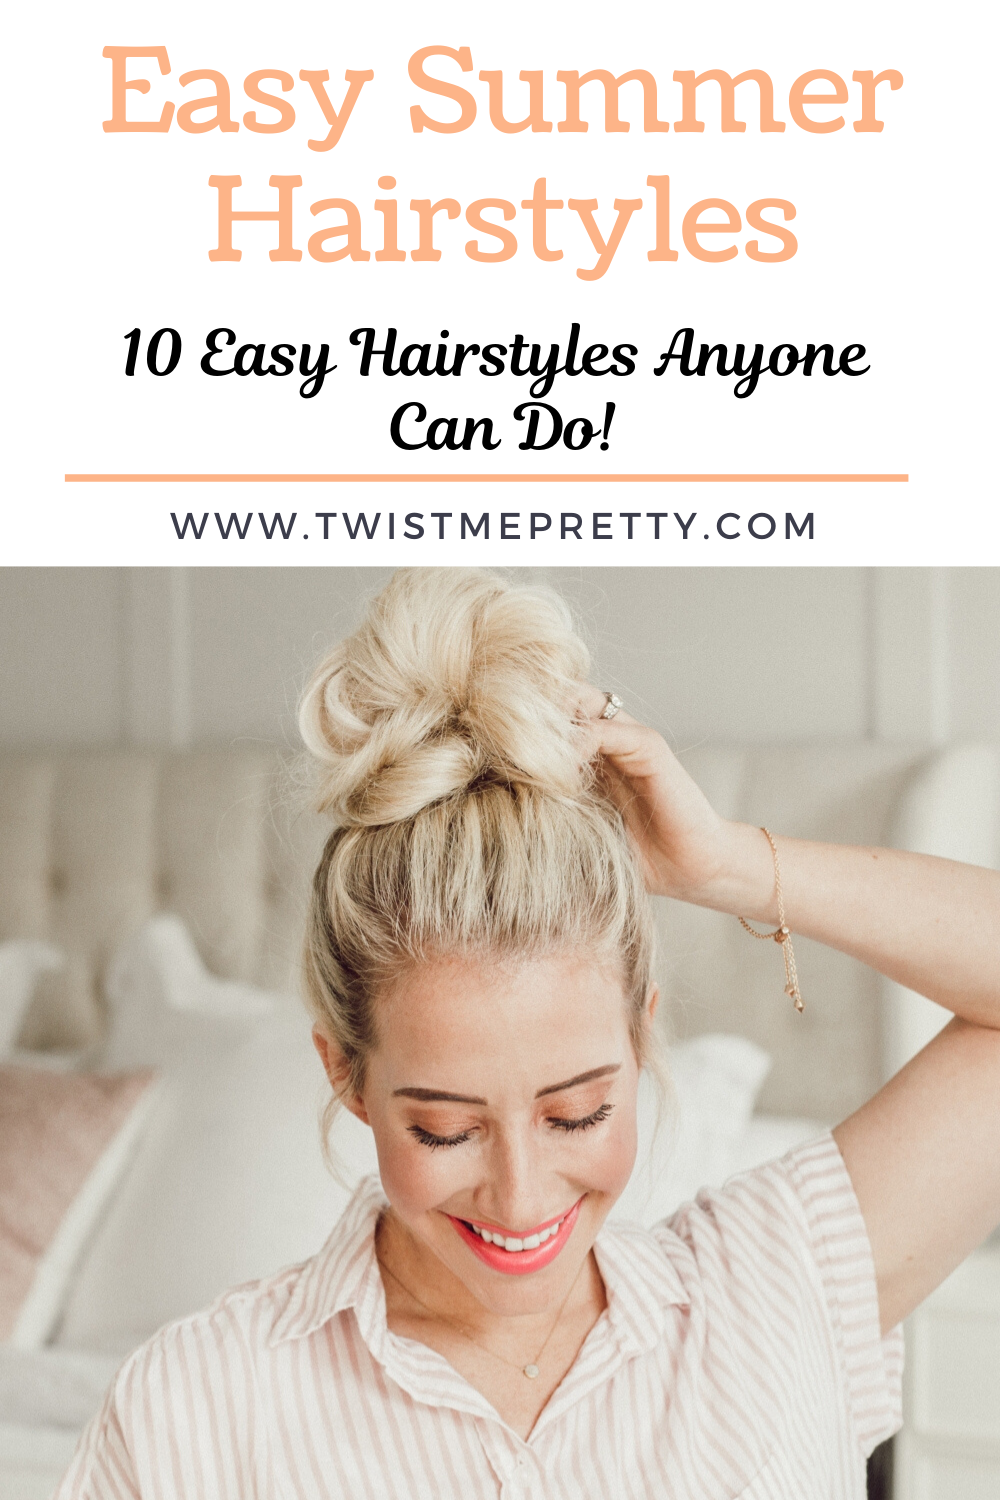 Easy Summer Hairstyles. 10 easy hairstyles anyone can do. www.twistmepretty.com